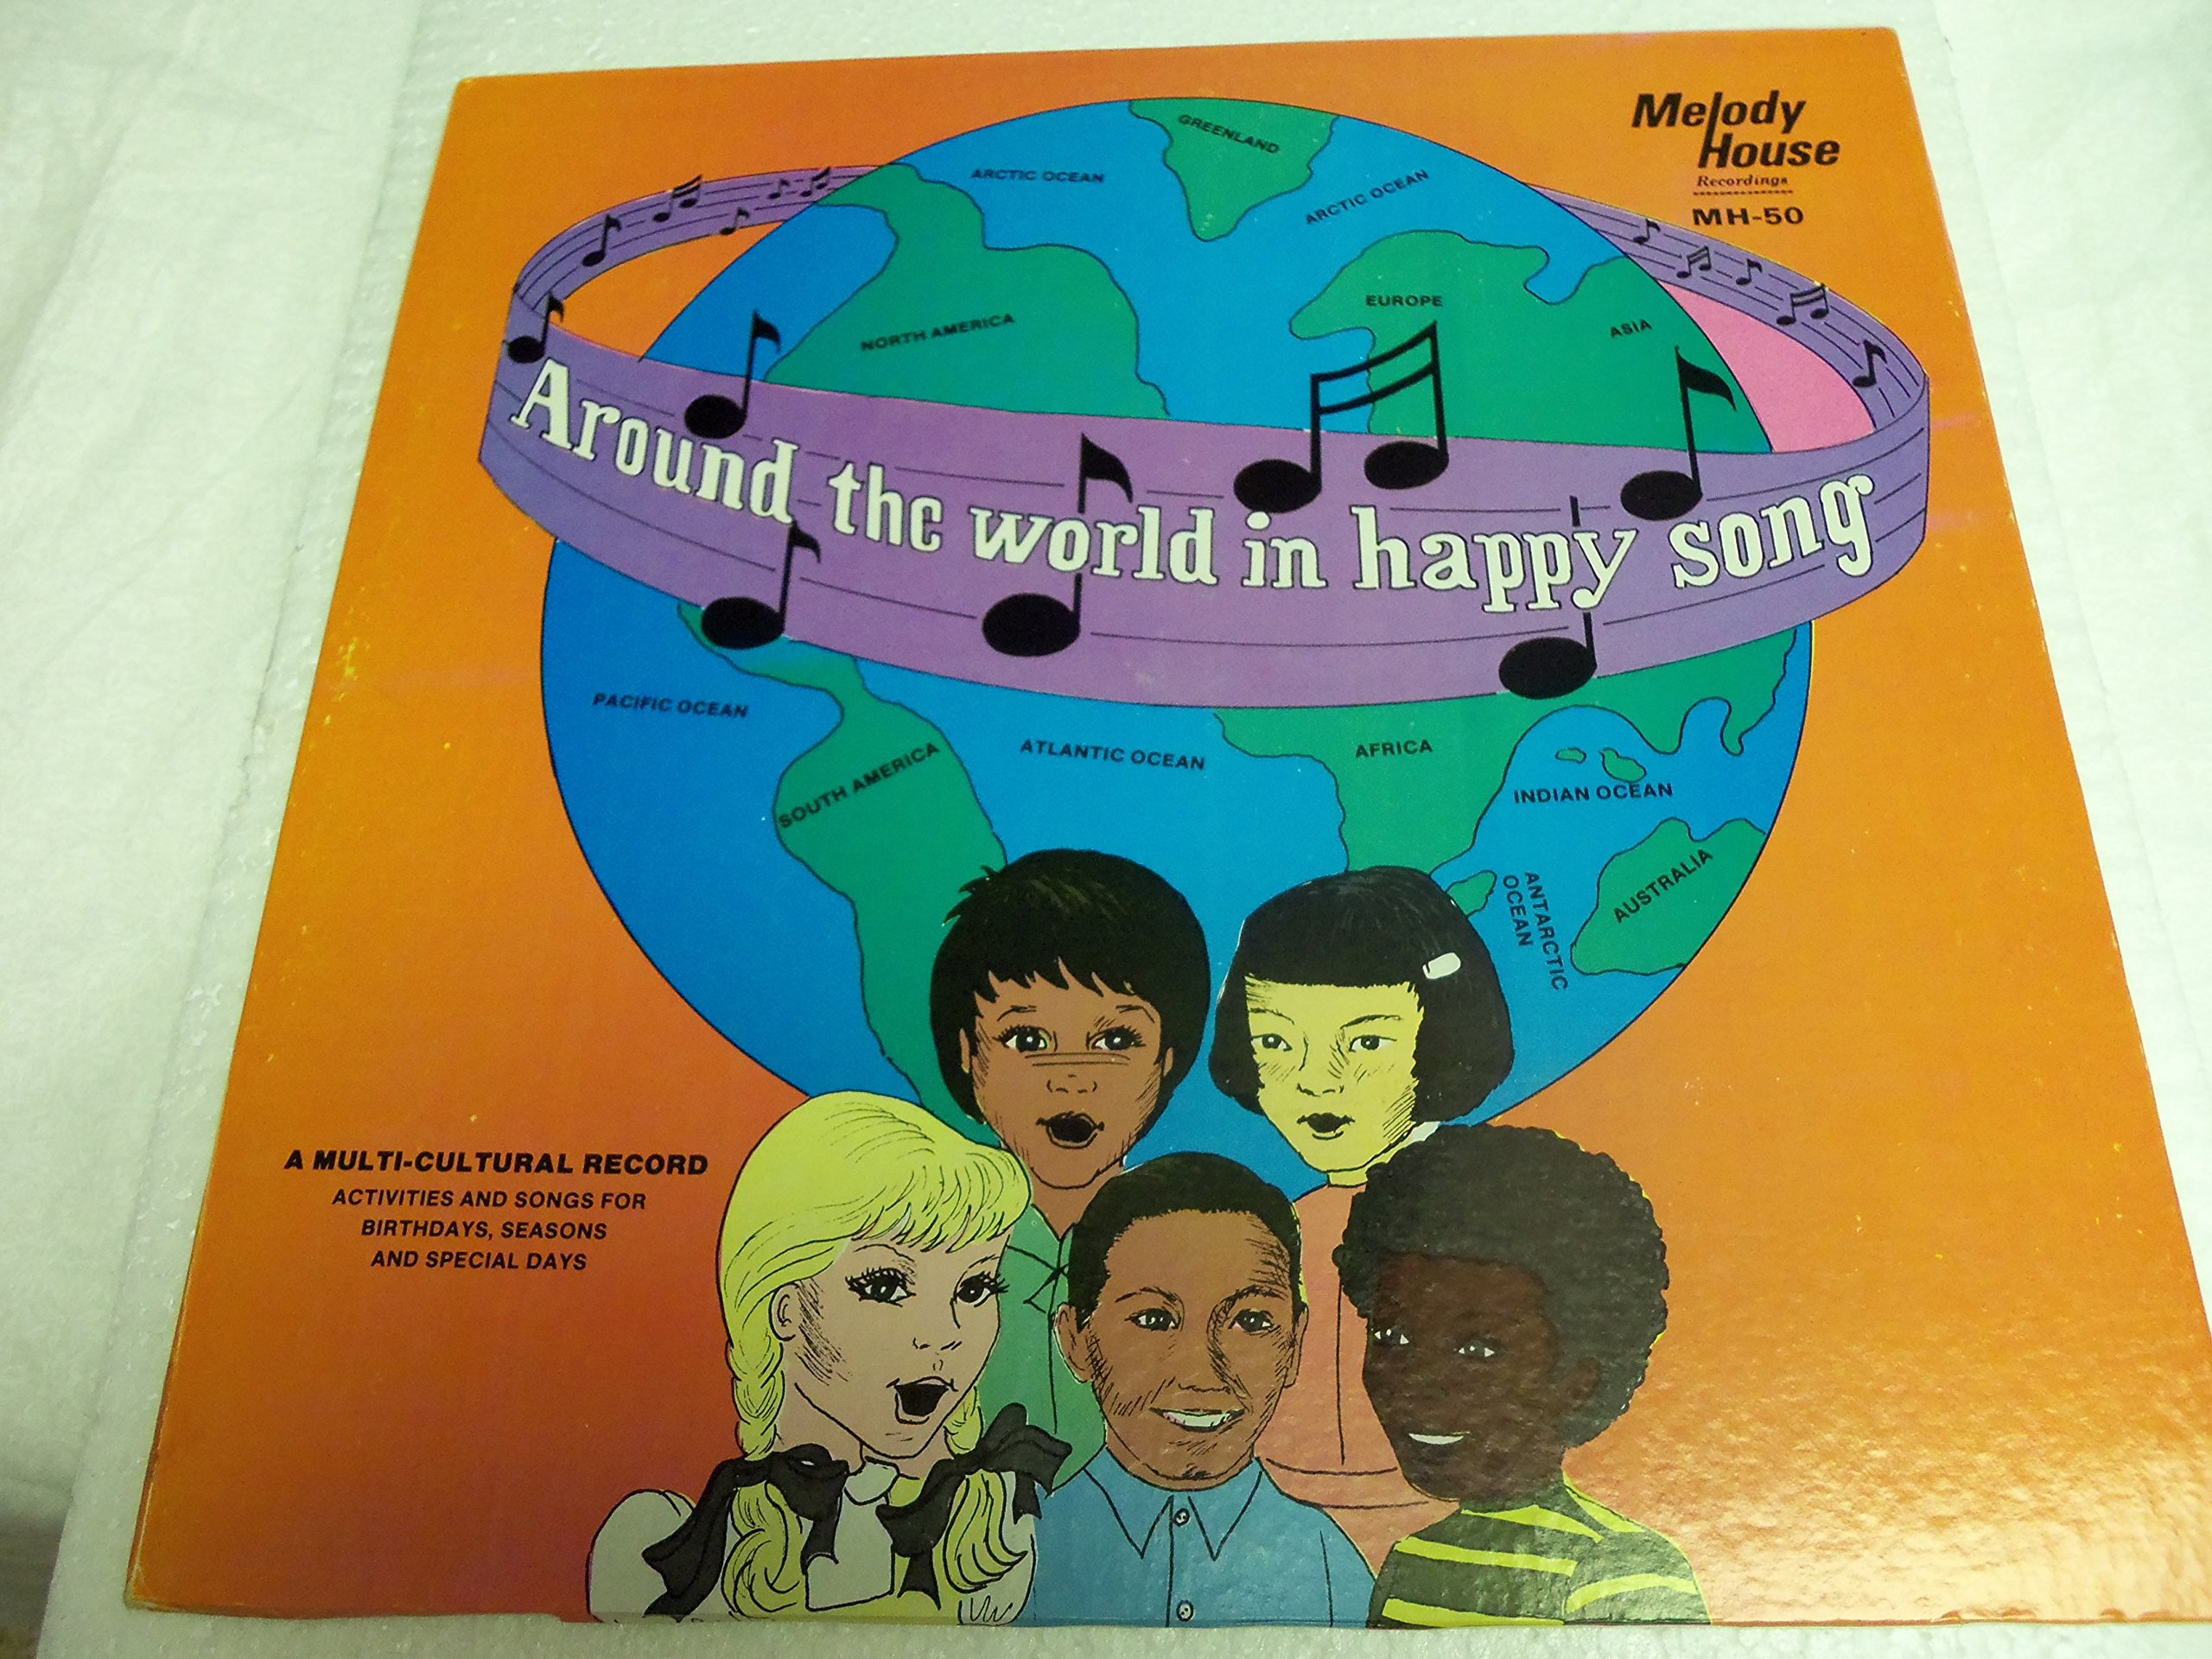 Around the World in Happy Song - A Multi-Cultural Record